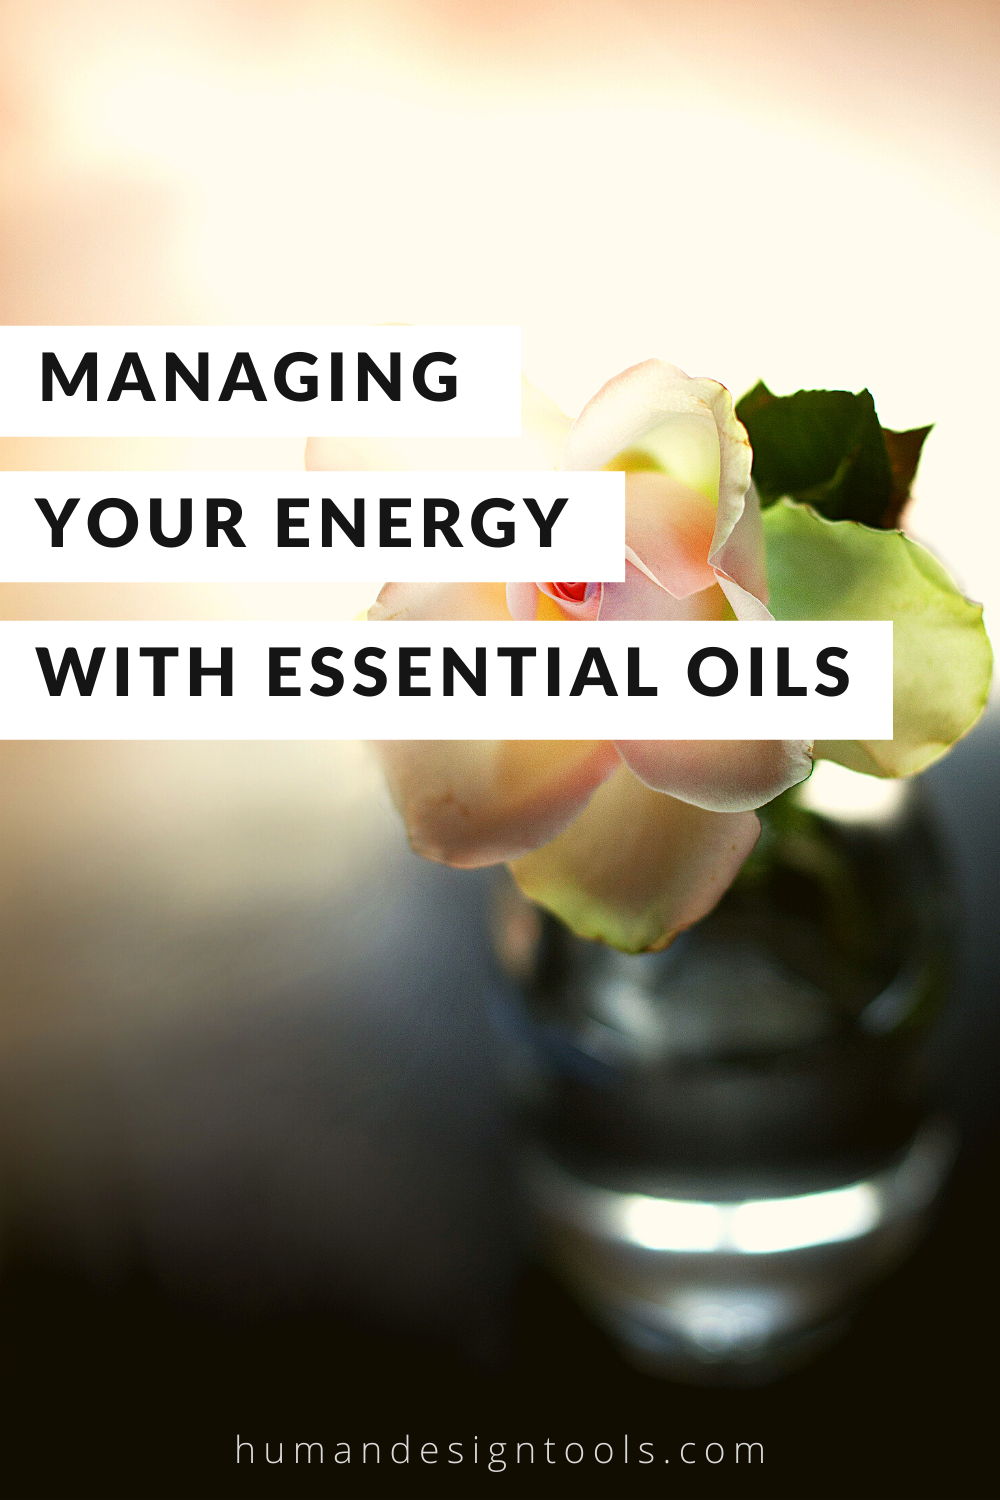 Manage Your Energy with Essential Oils